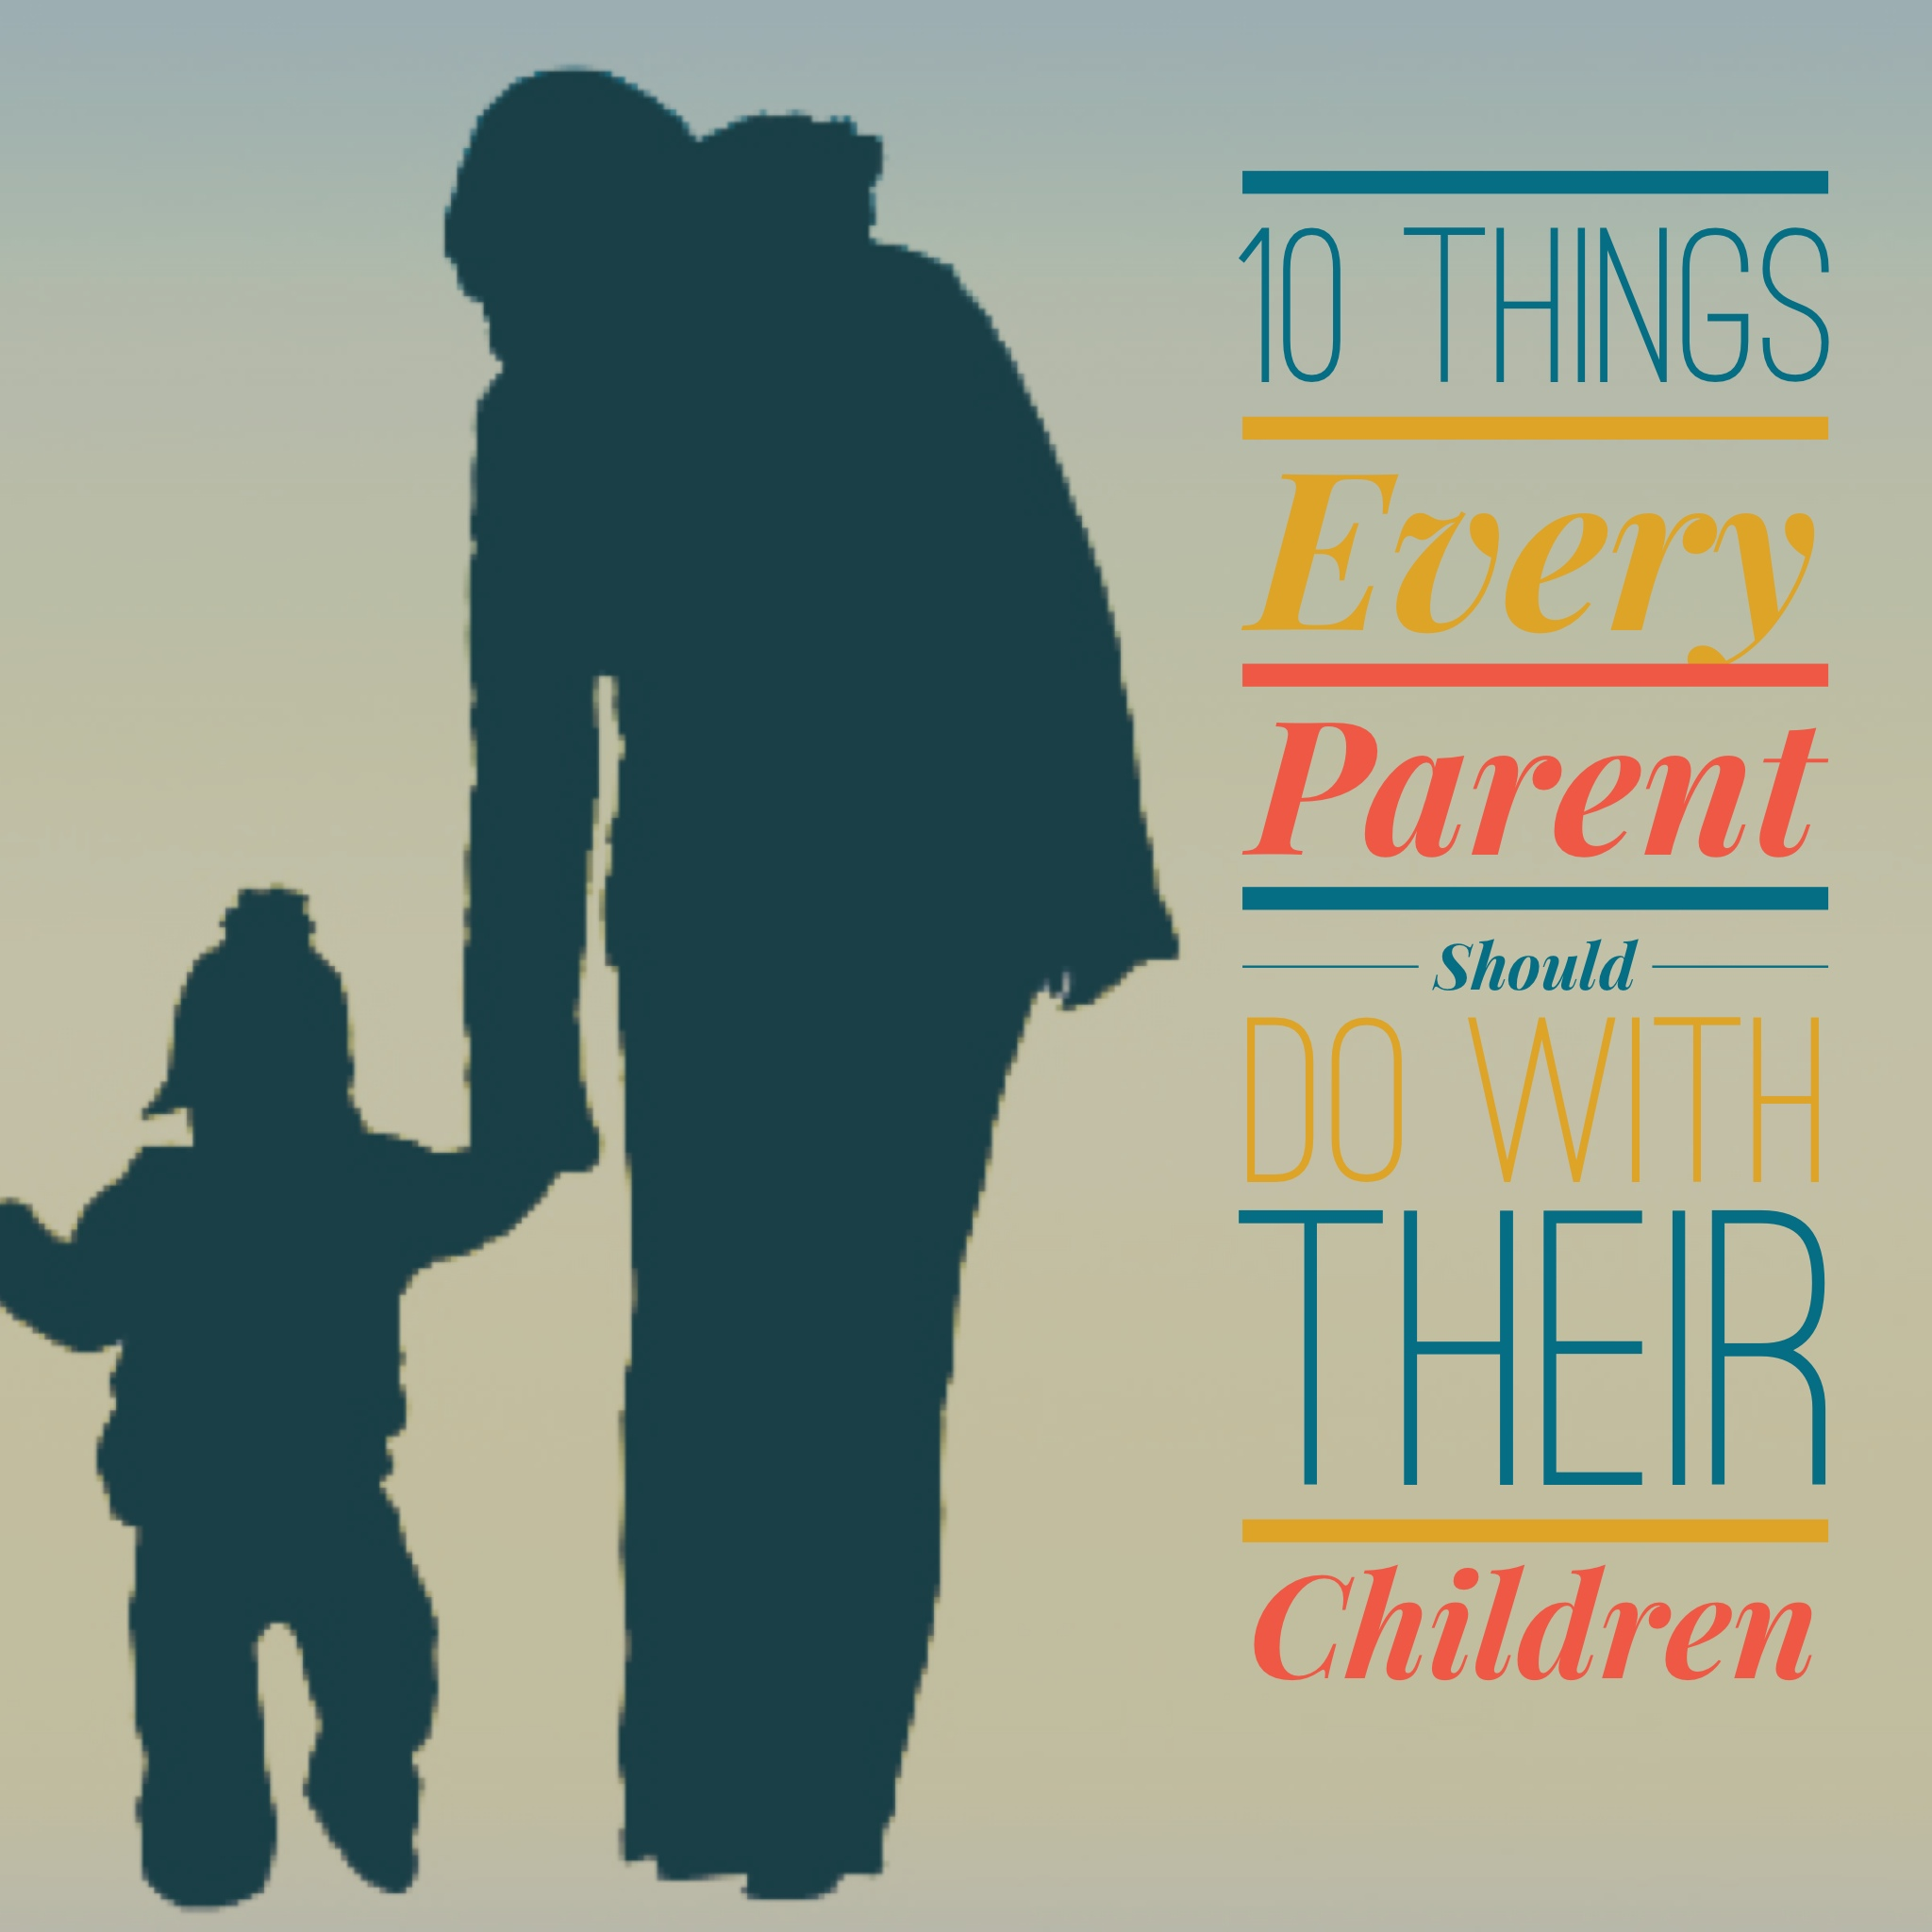 10 Things Every Parent Should Do With Their Children